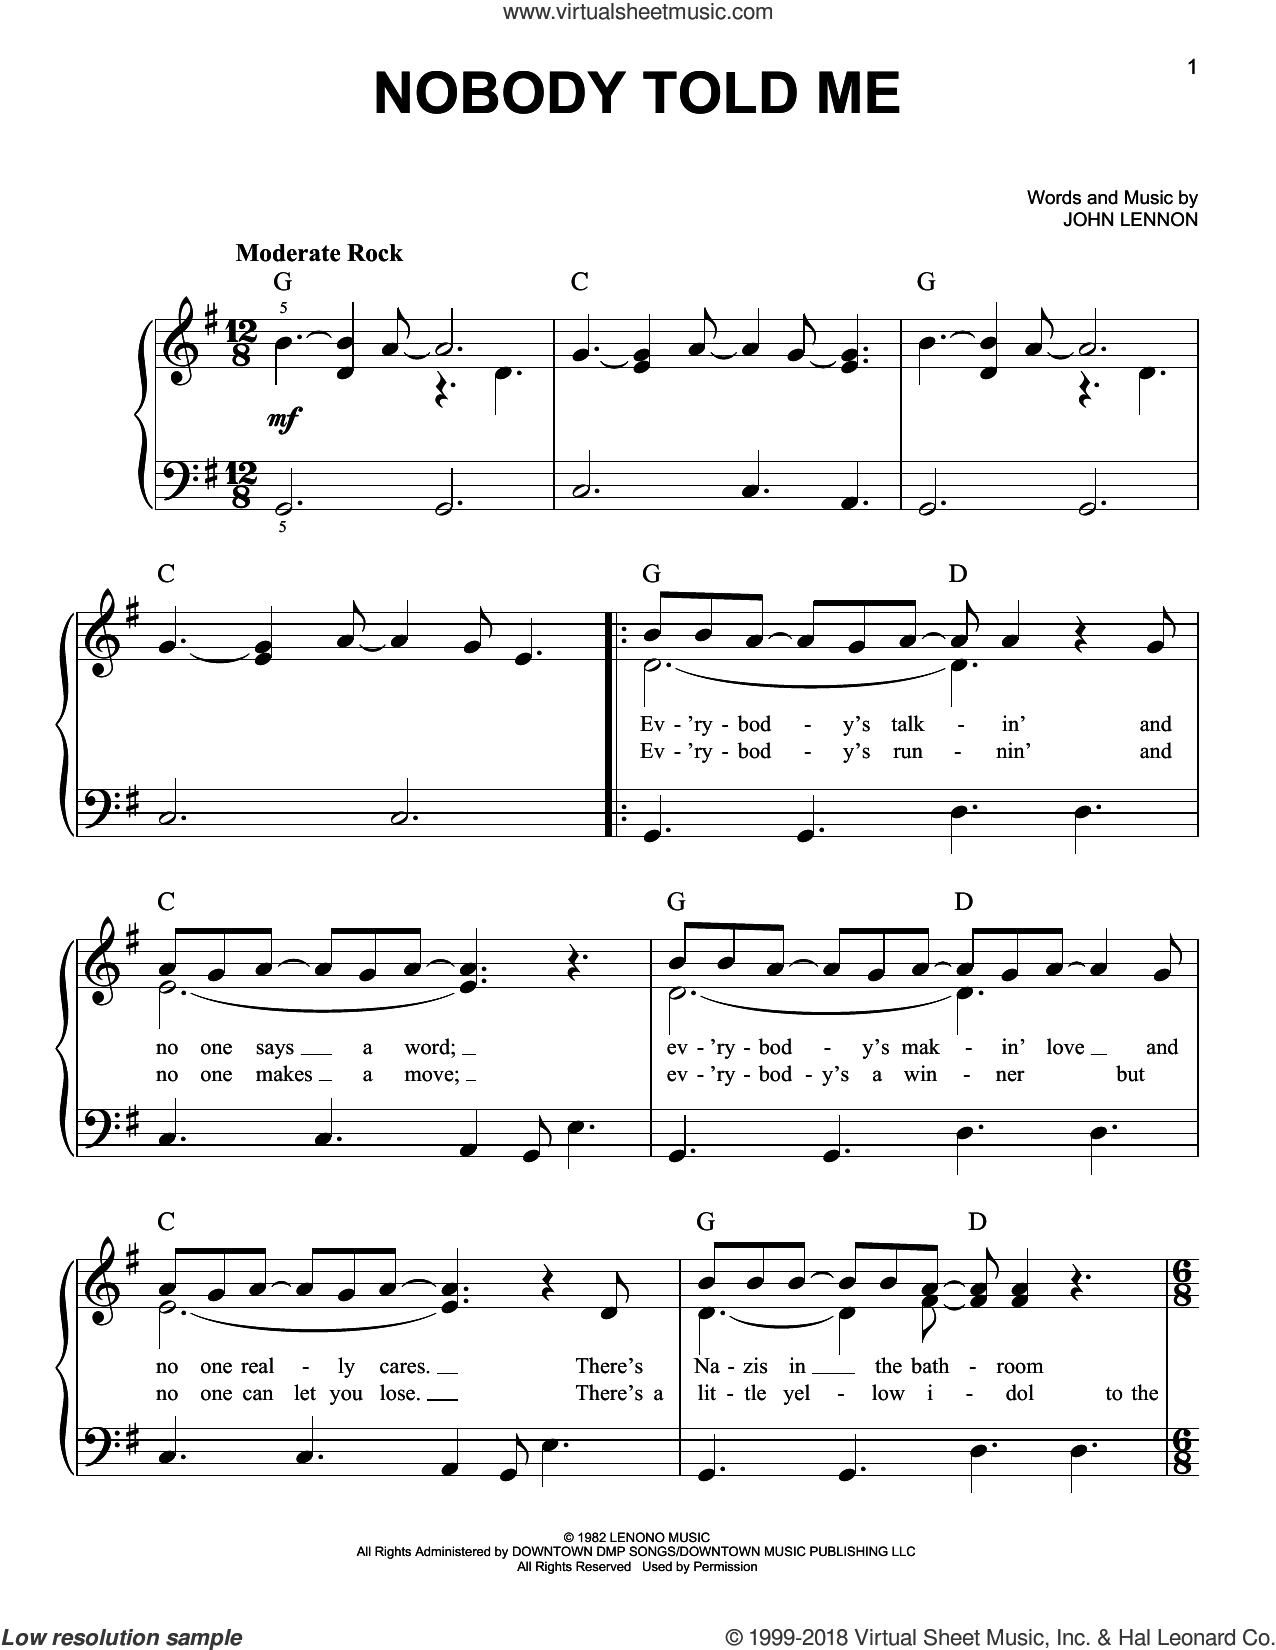 Nobody Told Me sheet music for piano solo by John Lennon. Score Image Preview.